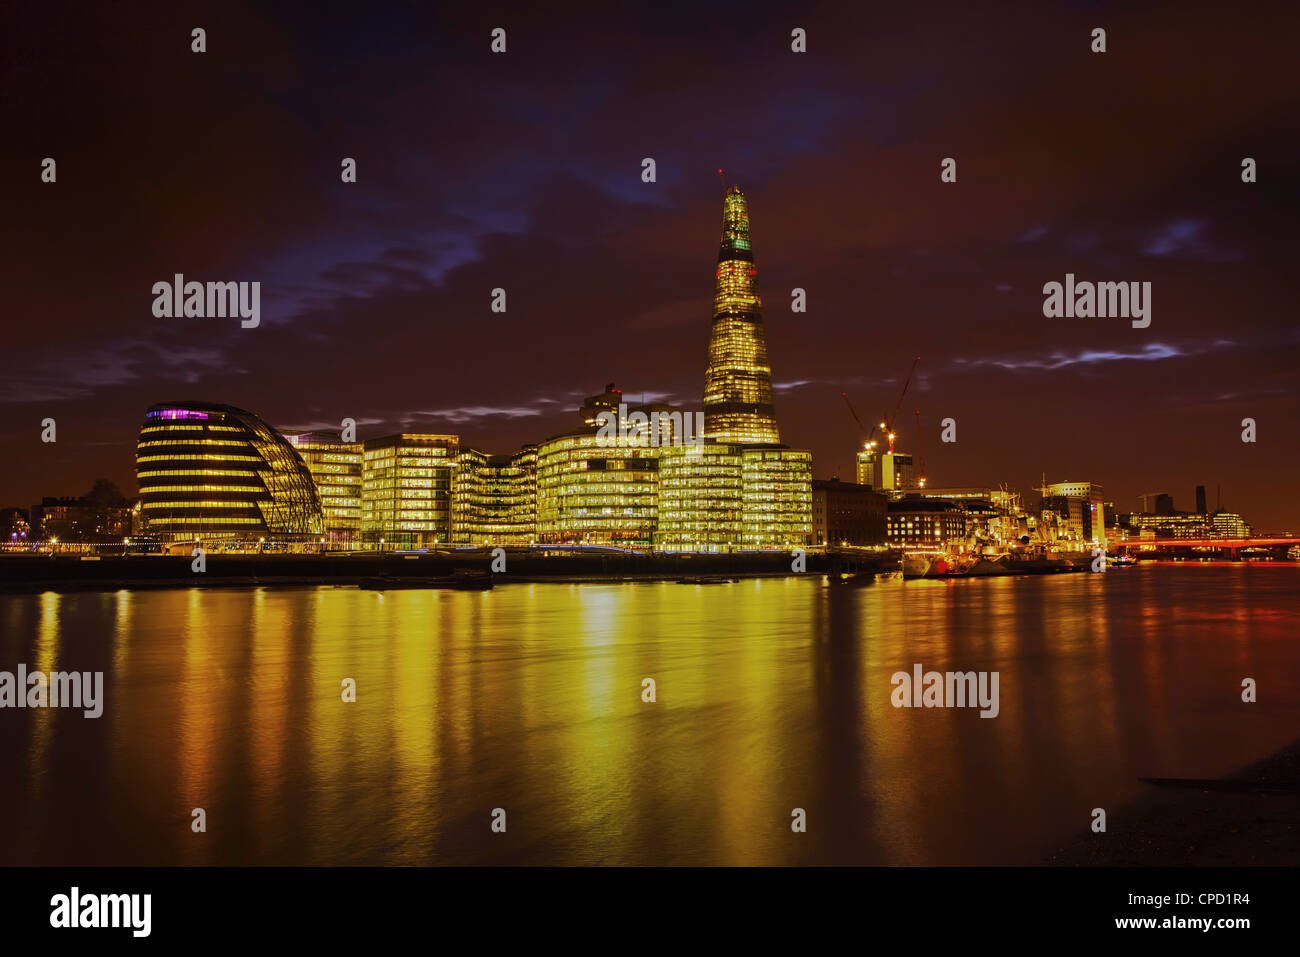 The Shard, City Hall, More London Place, Southwark Crown court and HMS Belfast at night, London, England, United - Stock Image